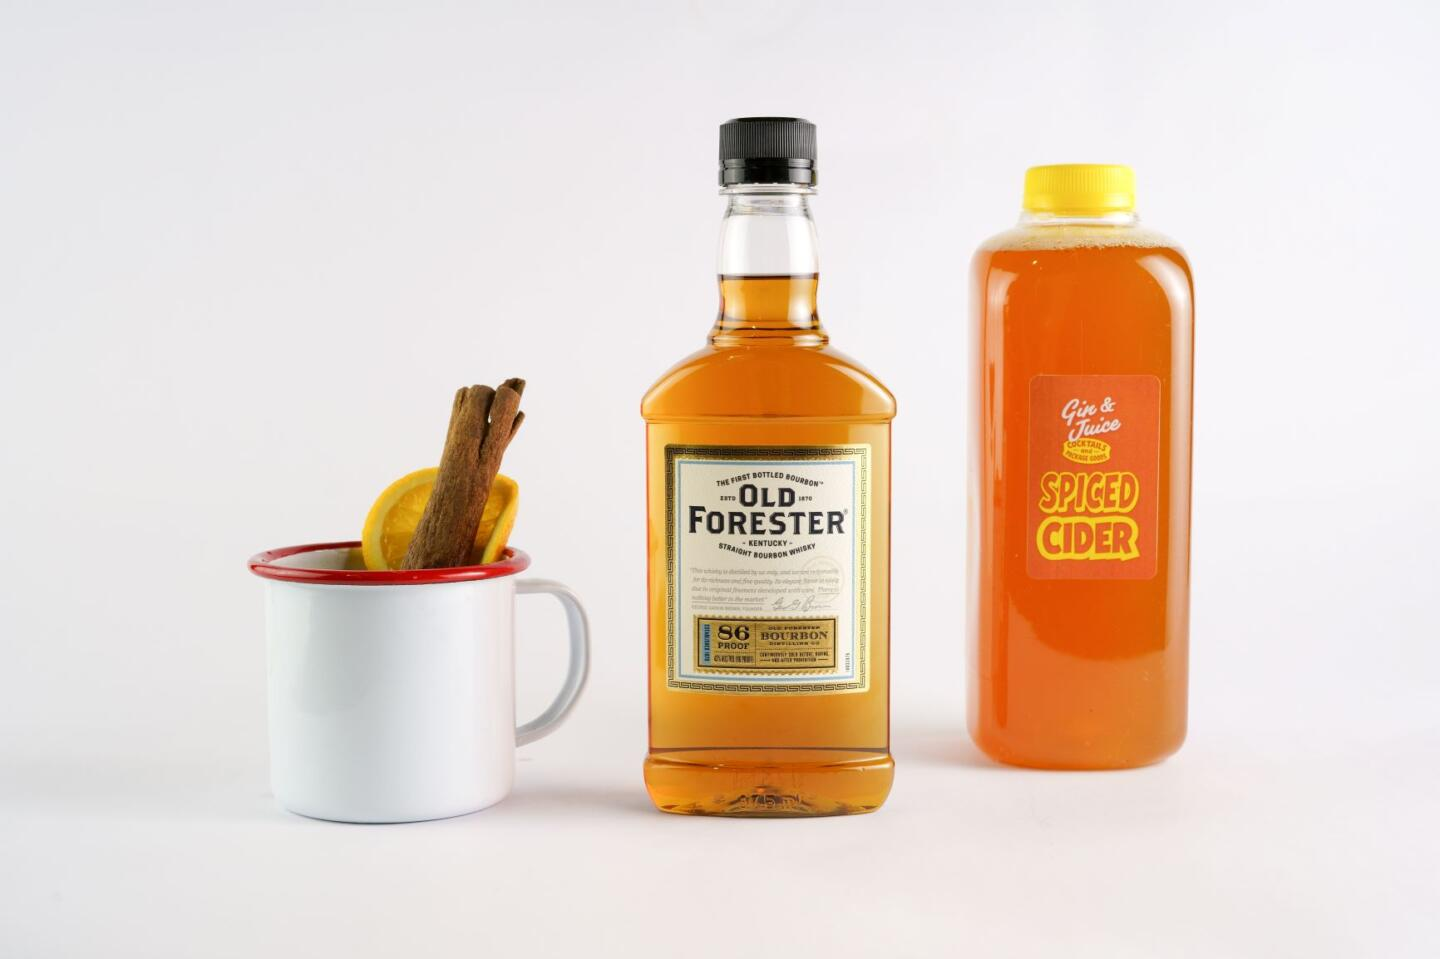 Spiced Cider Kit Gin and Juice